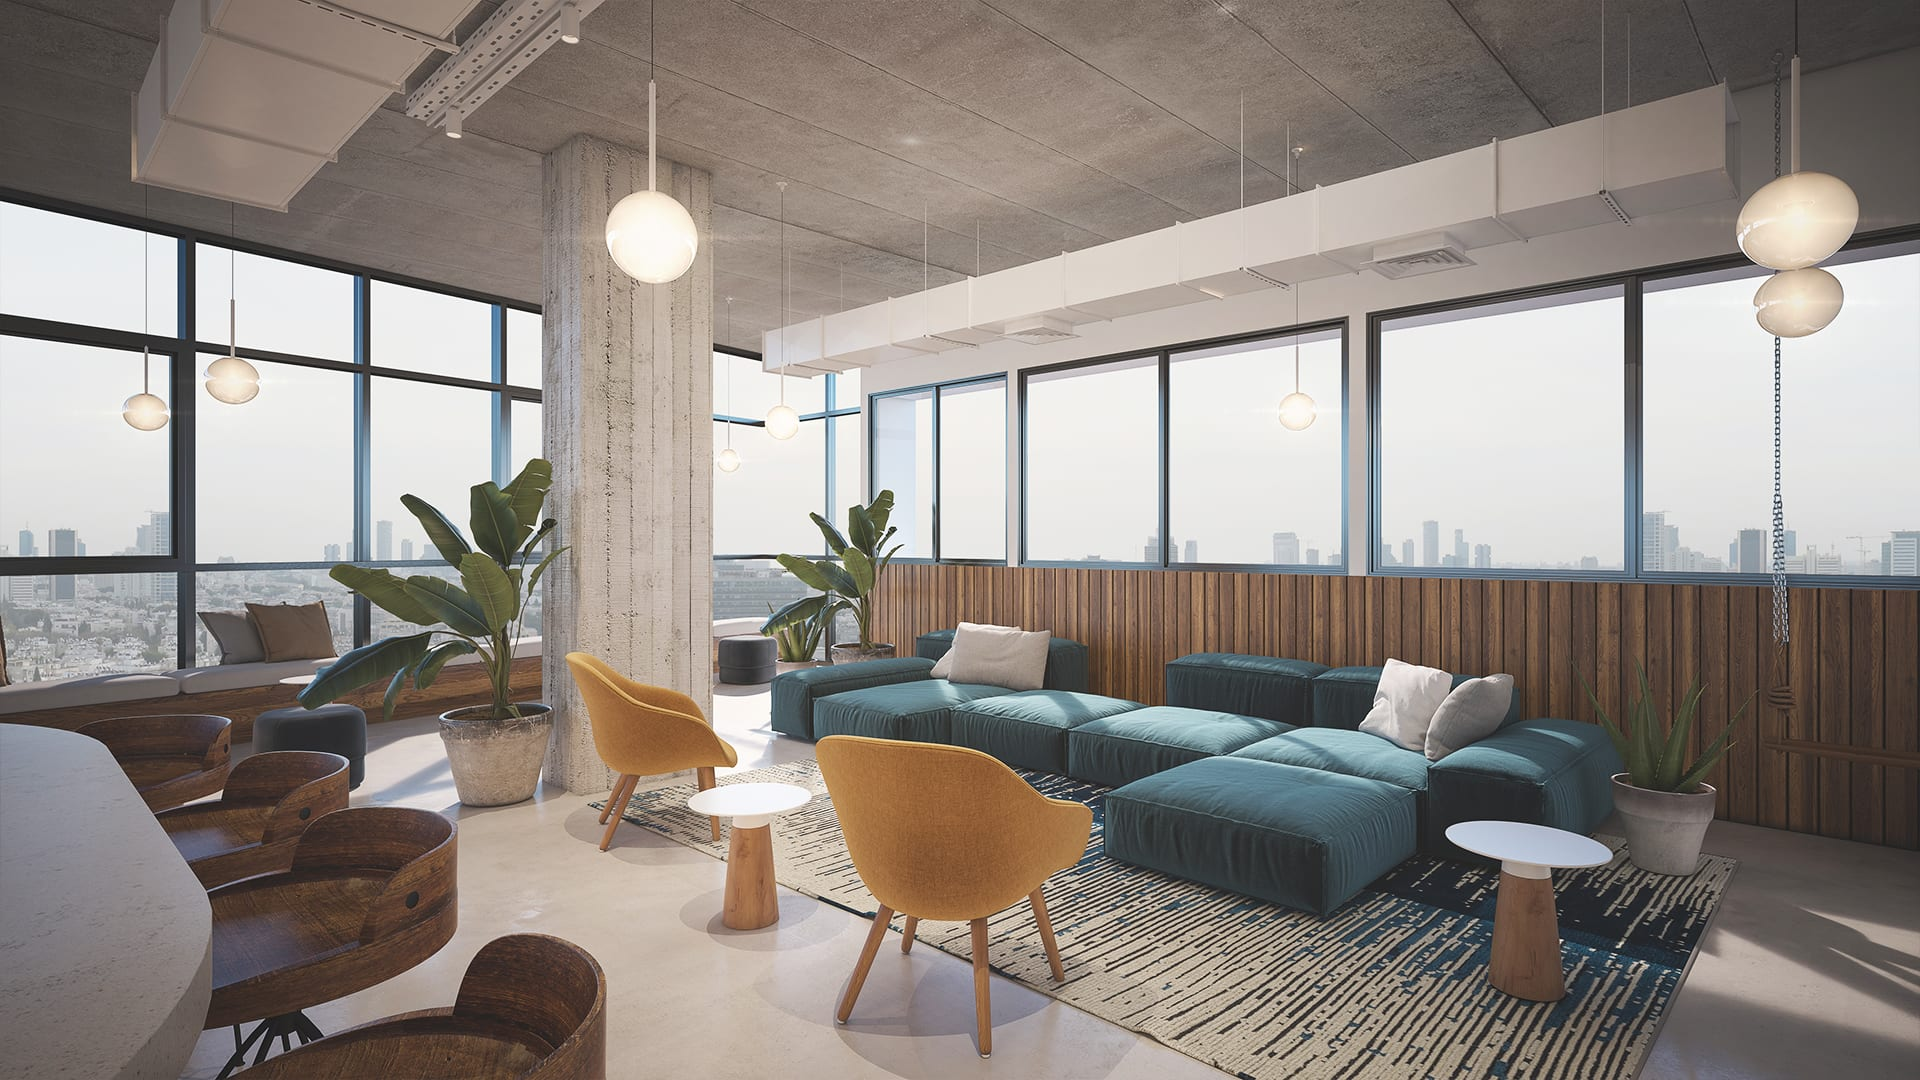 Maayan-Golan_Architectural-Visualization_interior-design-visualization_office-space_lounge_switchup_05